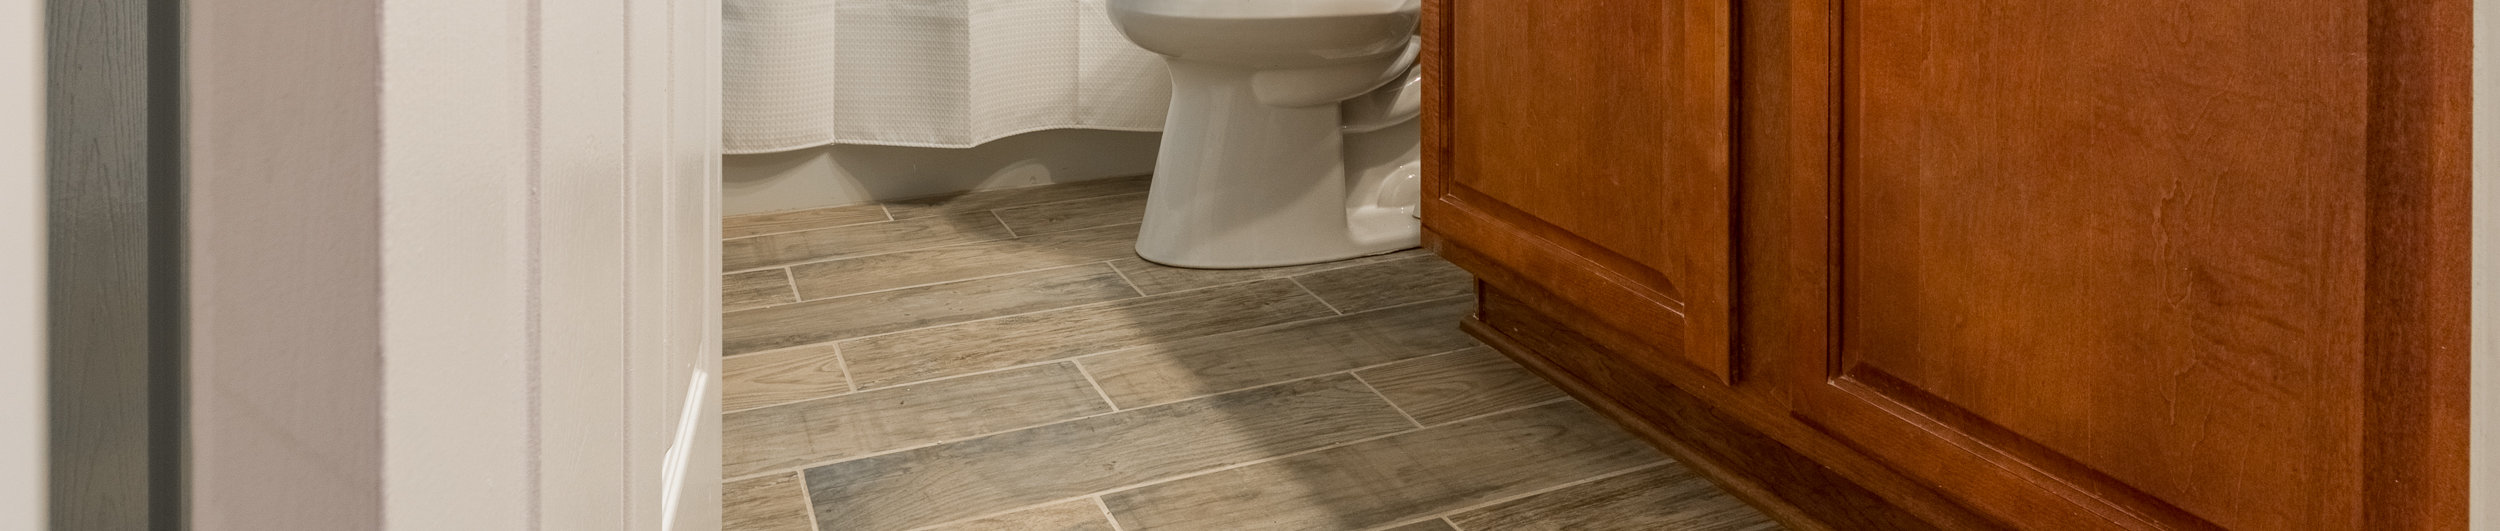 Custom Bathroom Floors Longwood, Florida